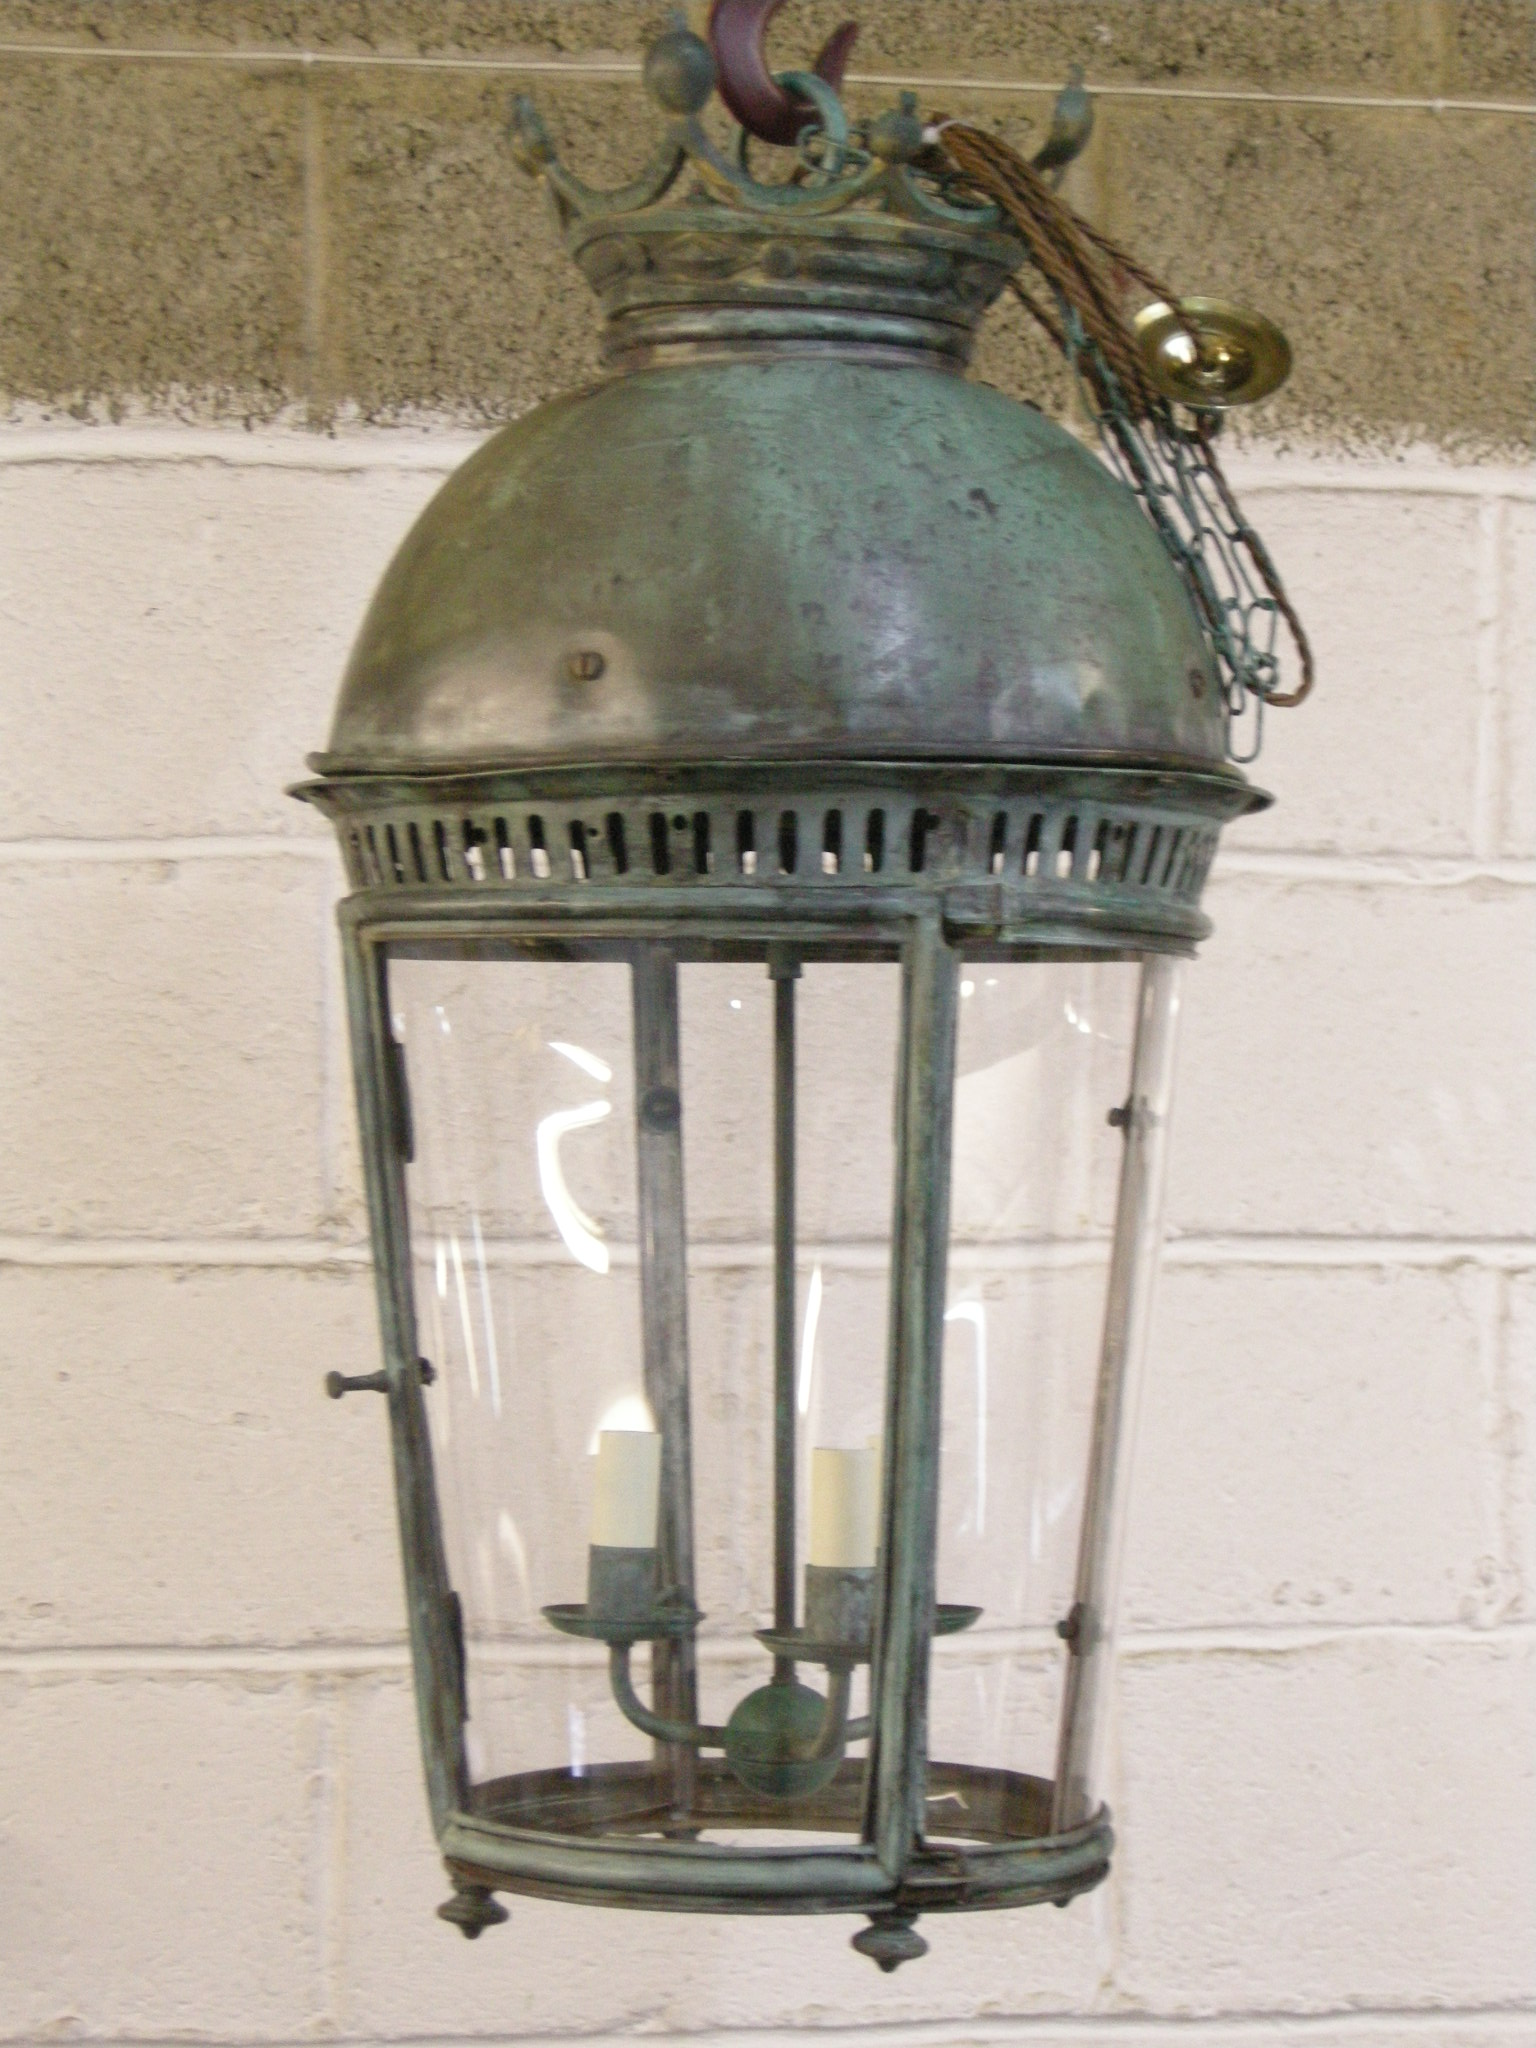 Antique Metals Lantern Restoration And Repair Samples